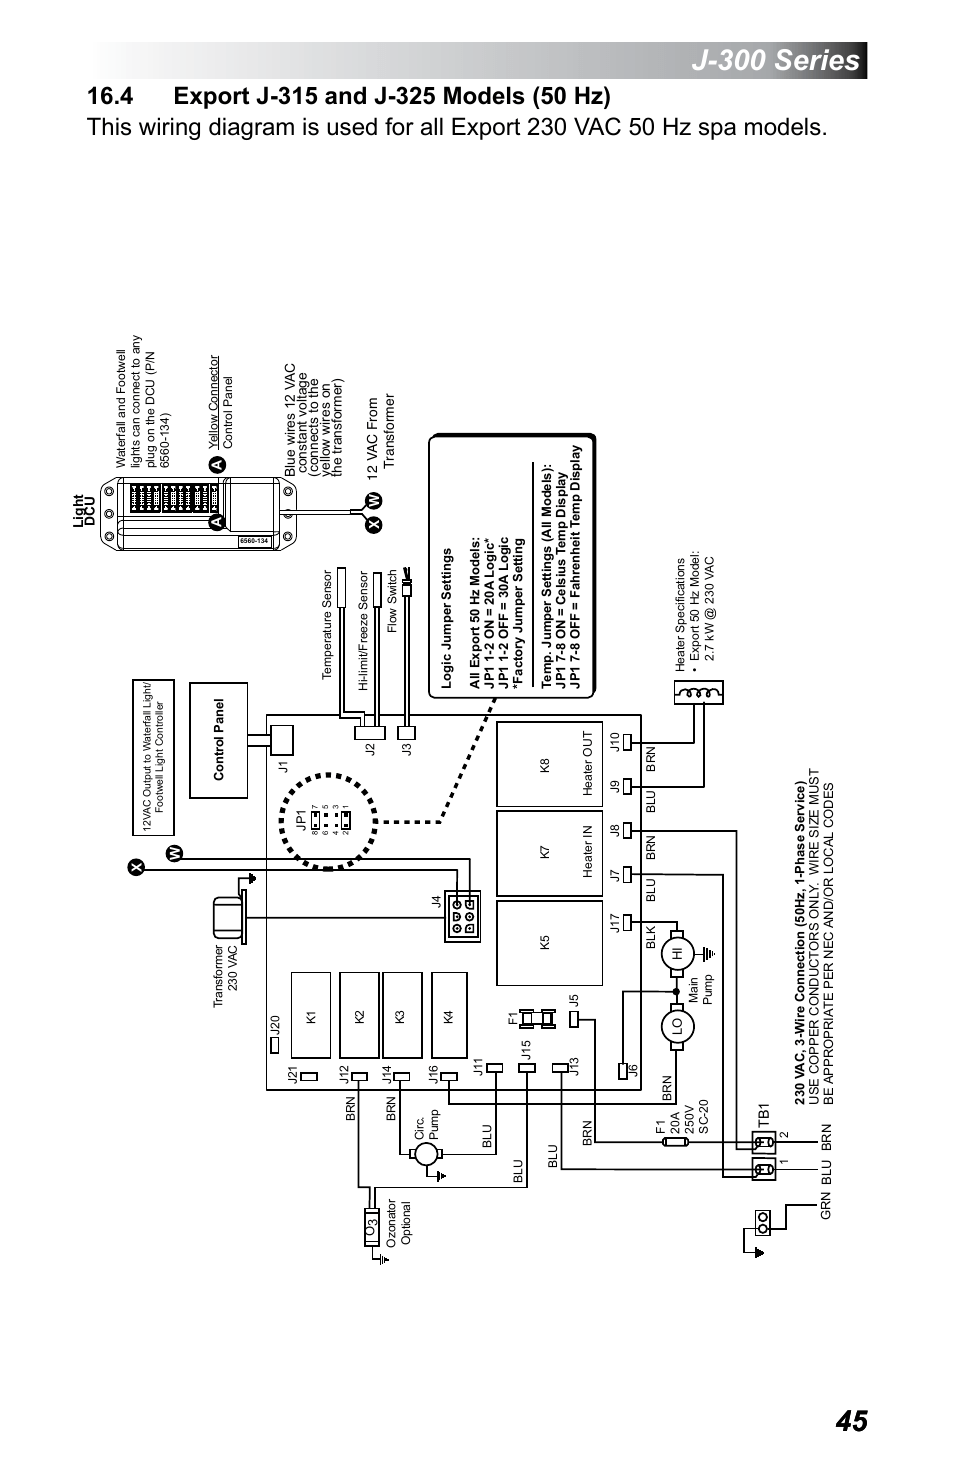 hight resolution of jacuzzi light wiring diagram wiring diagrams spy 4 export j 315 and j 325 models